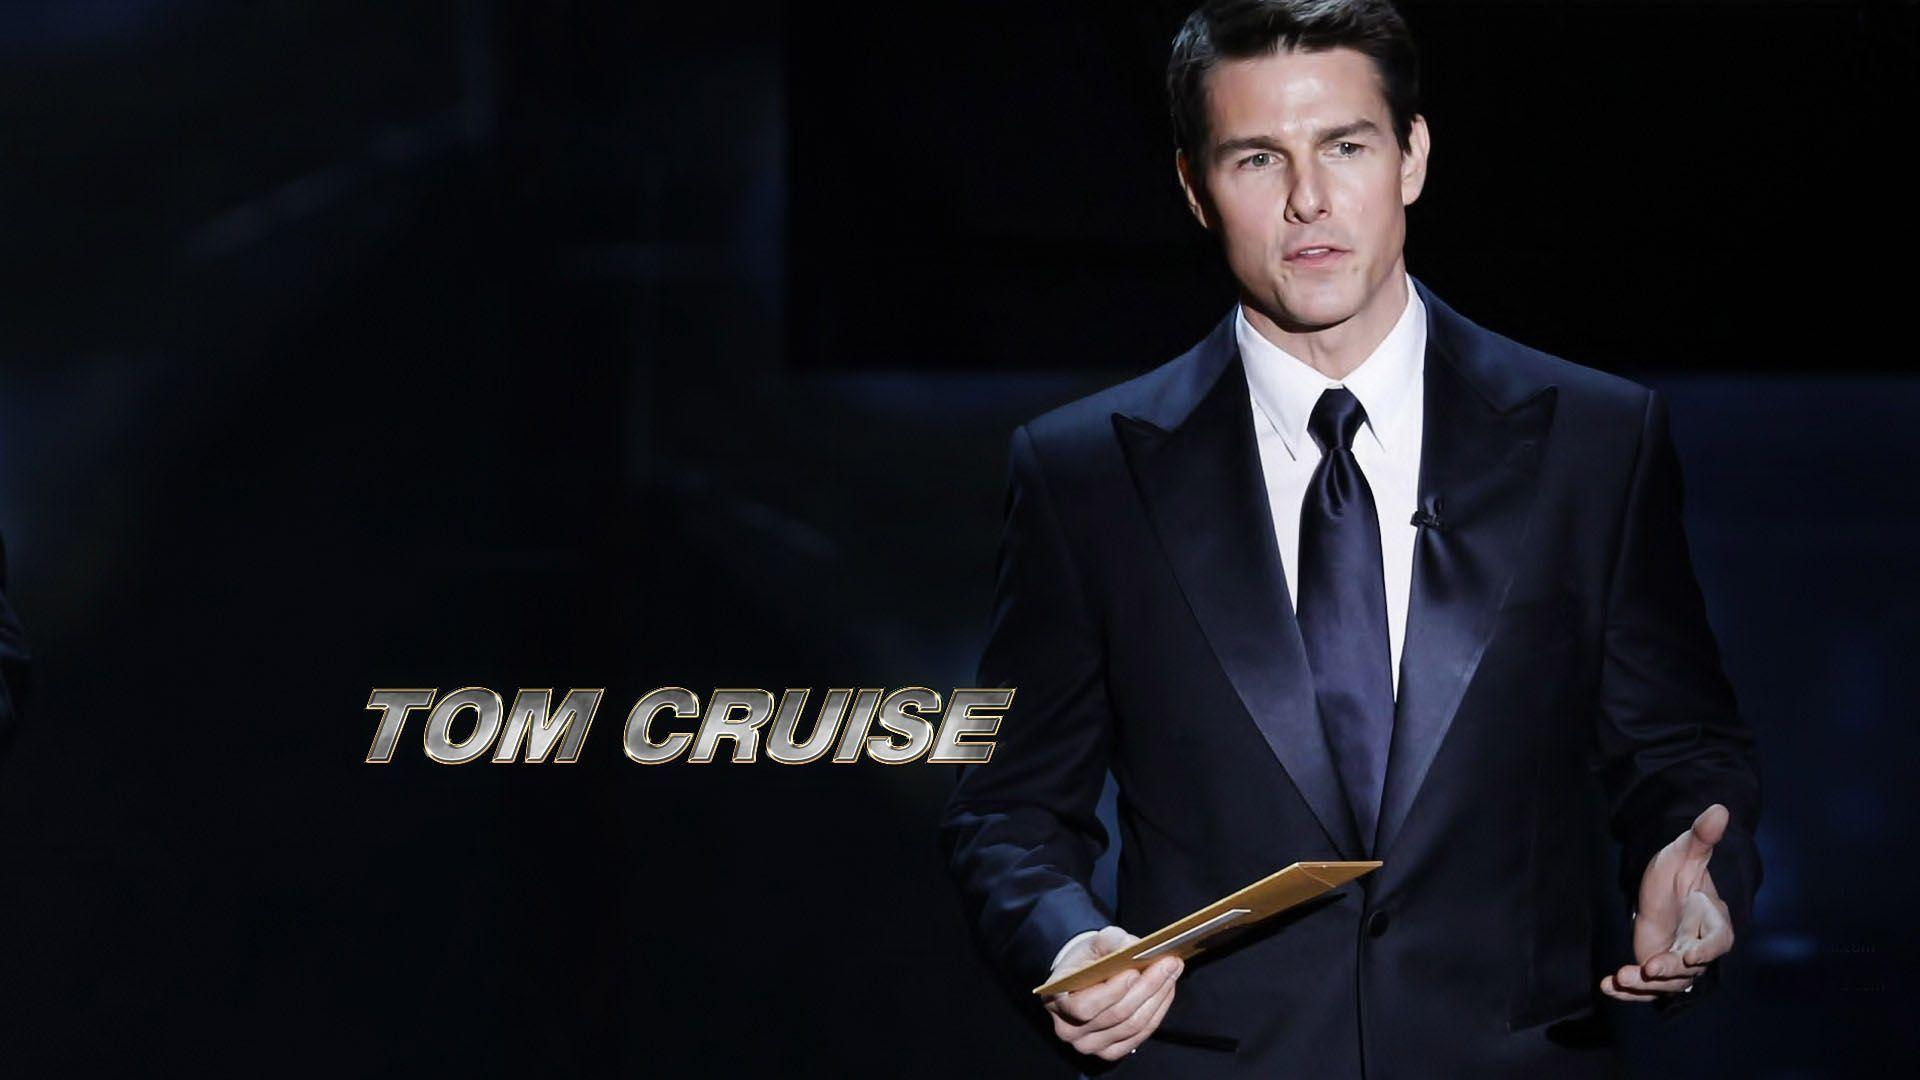 Tom Cruise Pictures 51 Greepx